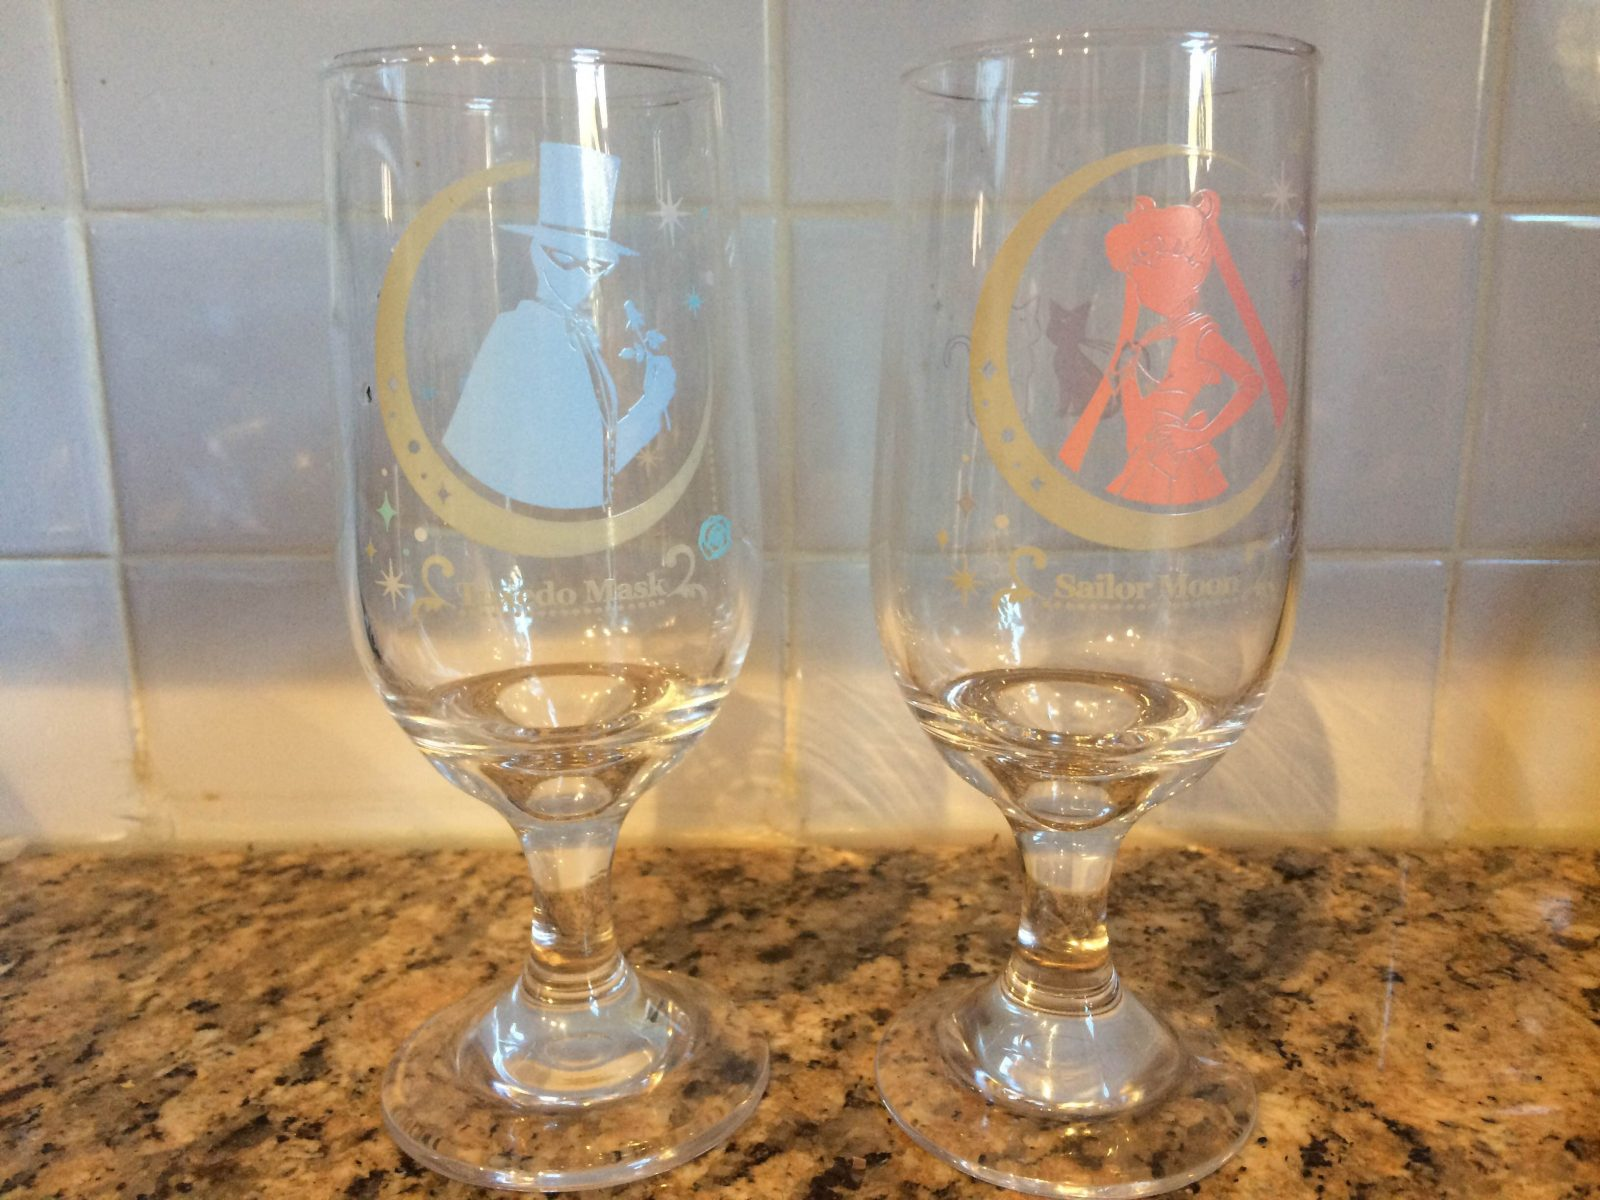 two wine glasses one with the blue tuxedo mask and another with a pink sailor moon